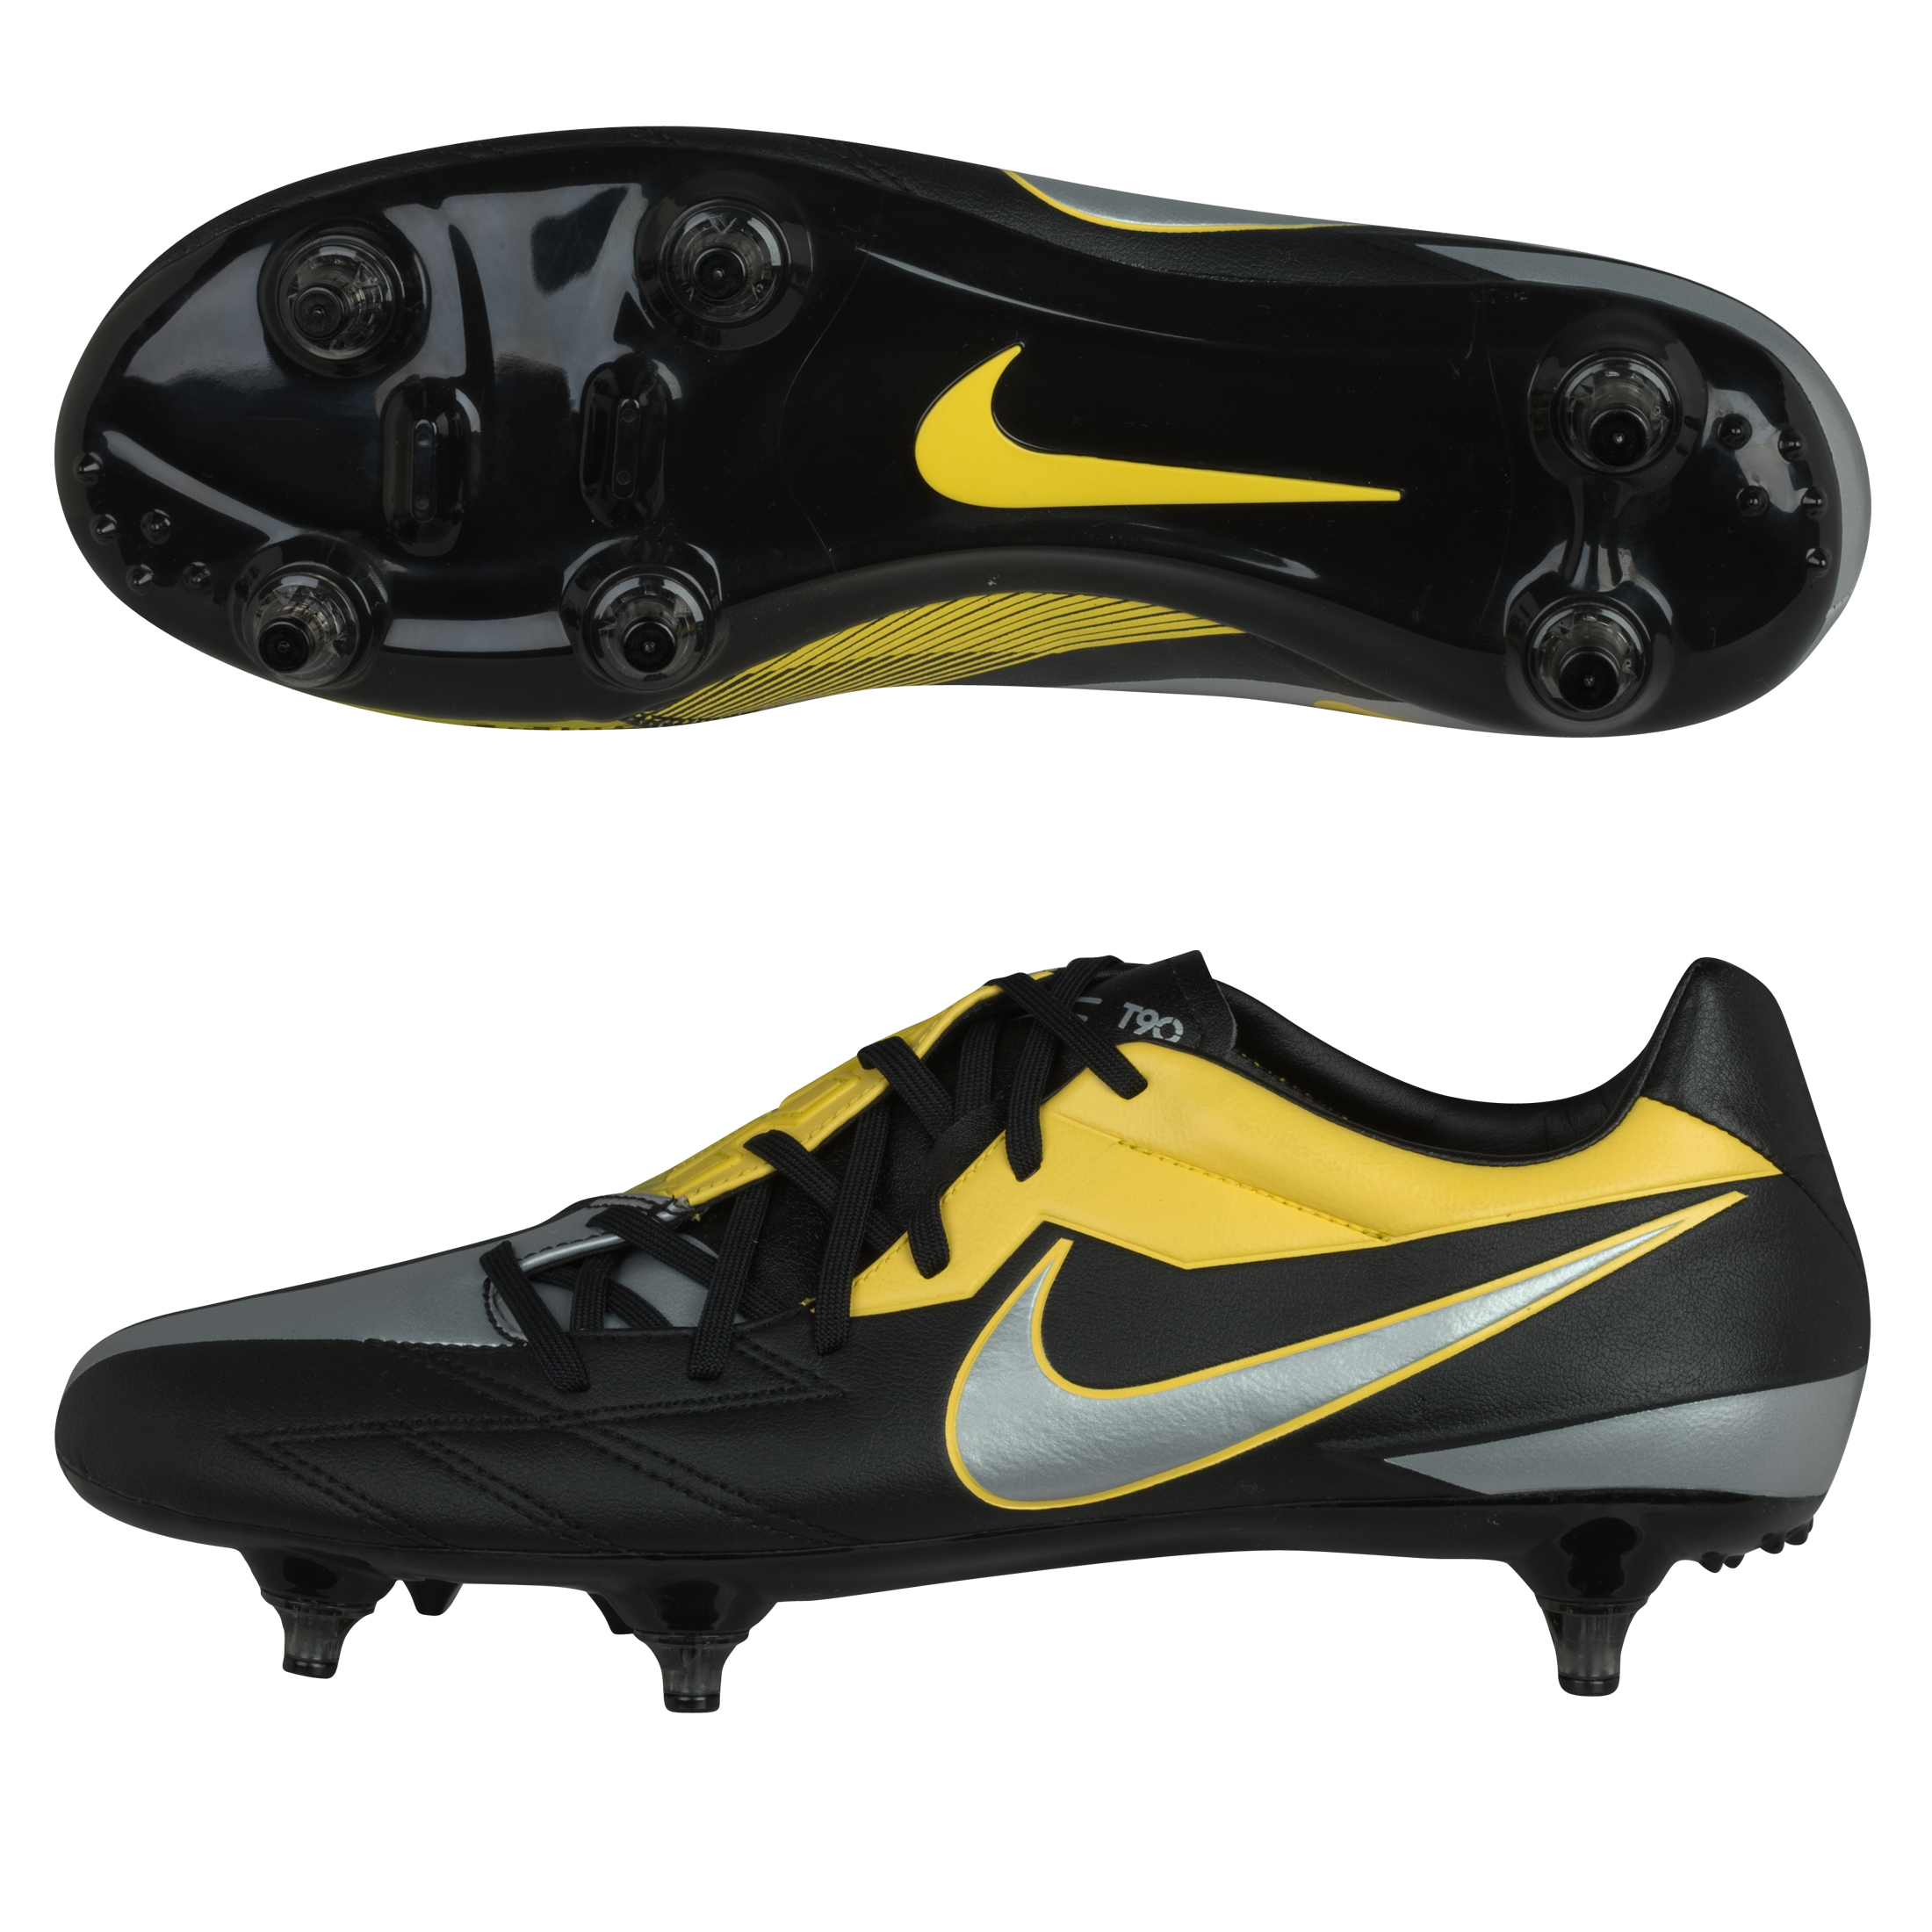 Nike Total90 Strike IV Soft Ground Football Boots - Black/Mtlc Luster/Tour Yellow